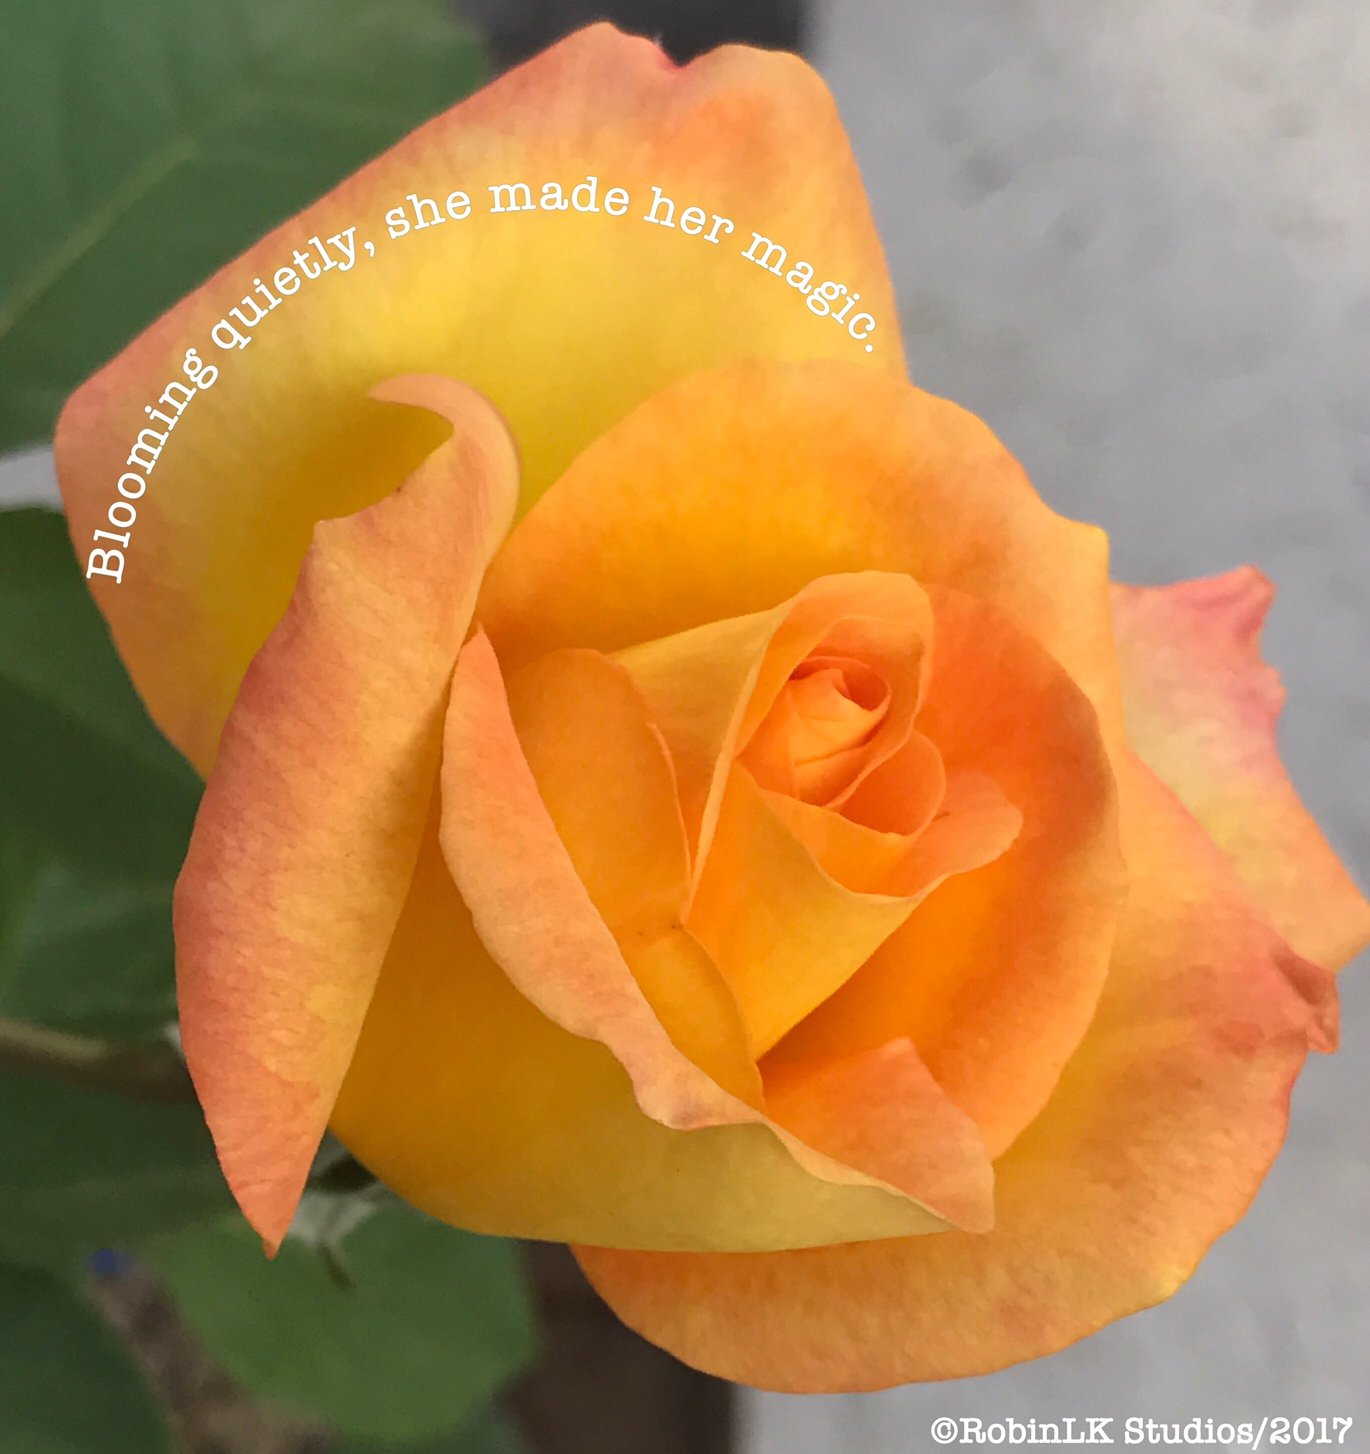 yellow rose with a six-word story from robinlk studios